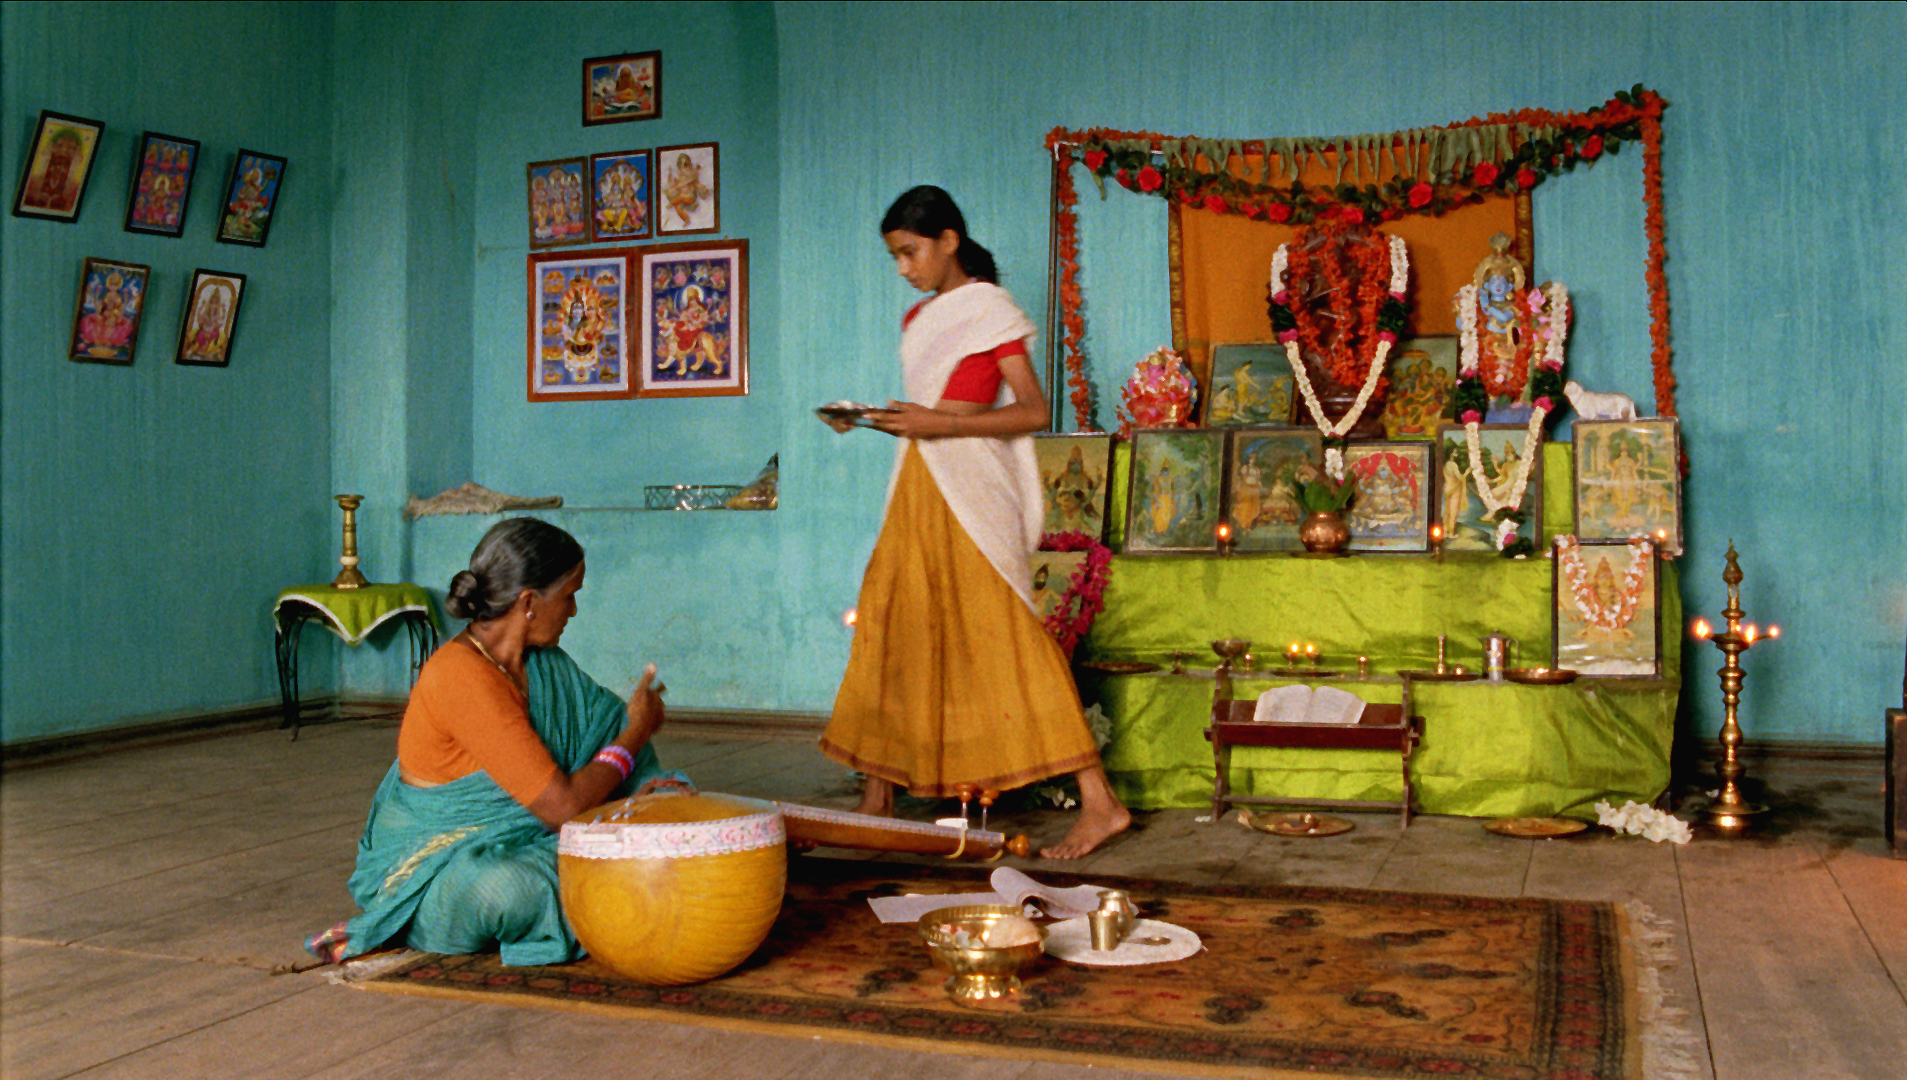 Vanaja steps away from Altar 2.jpg